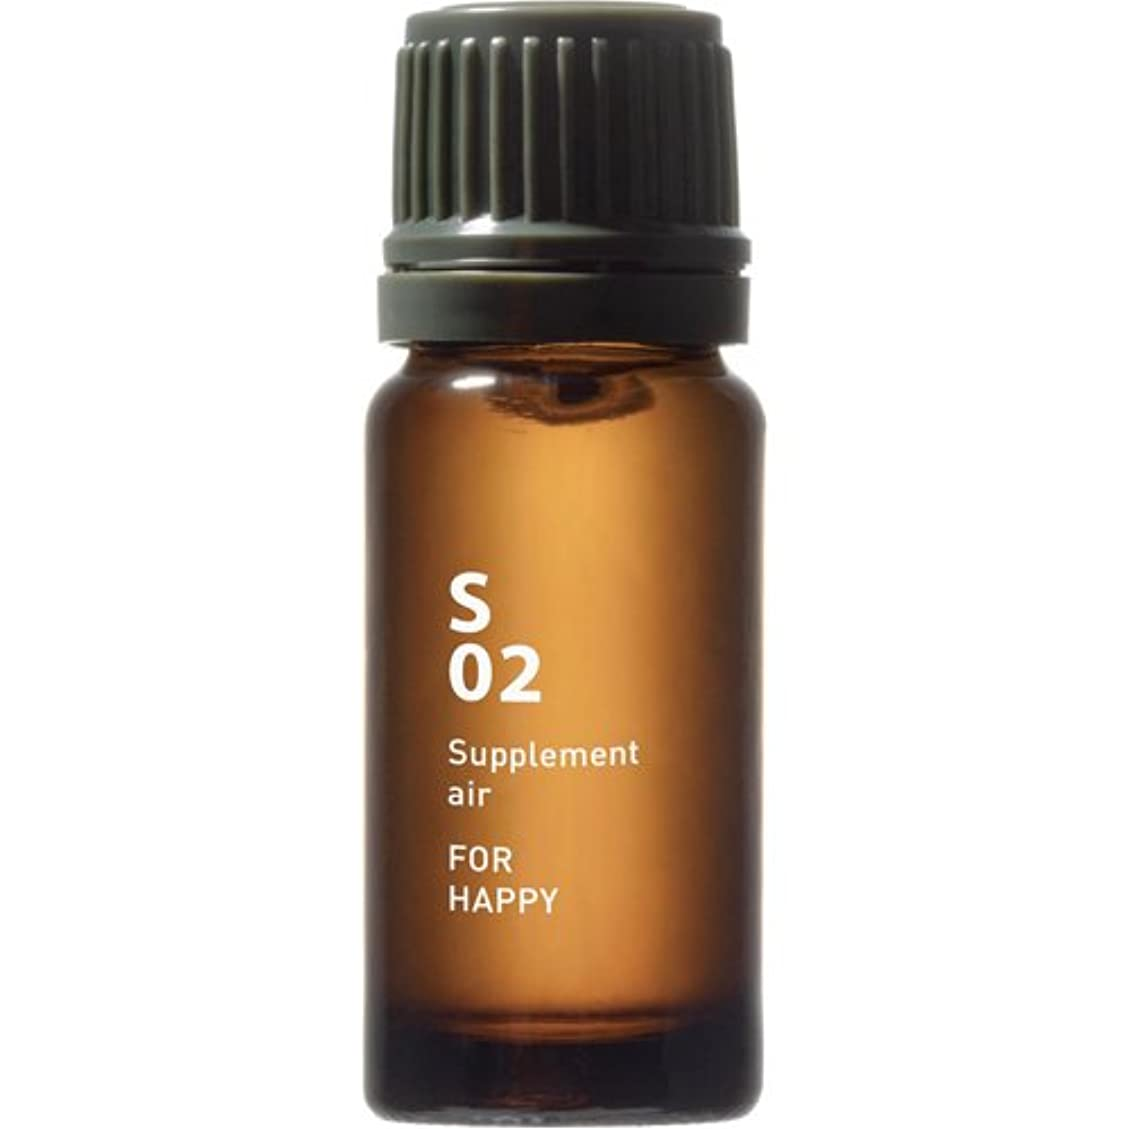 S02 FOR HAPPY Supplement air 10ml